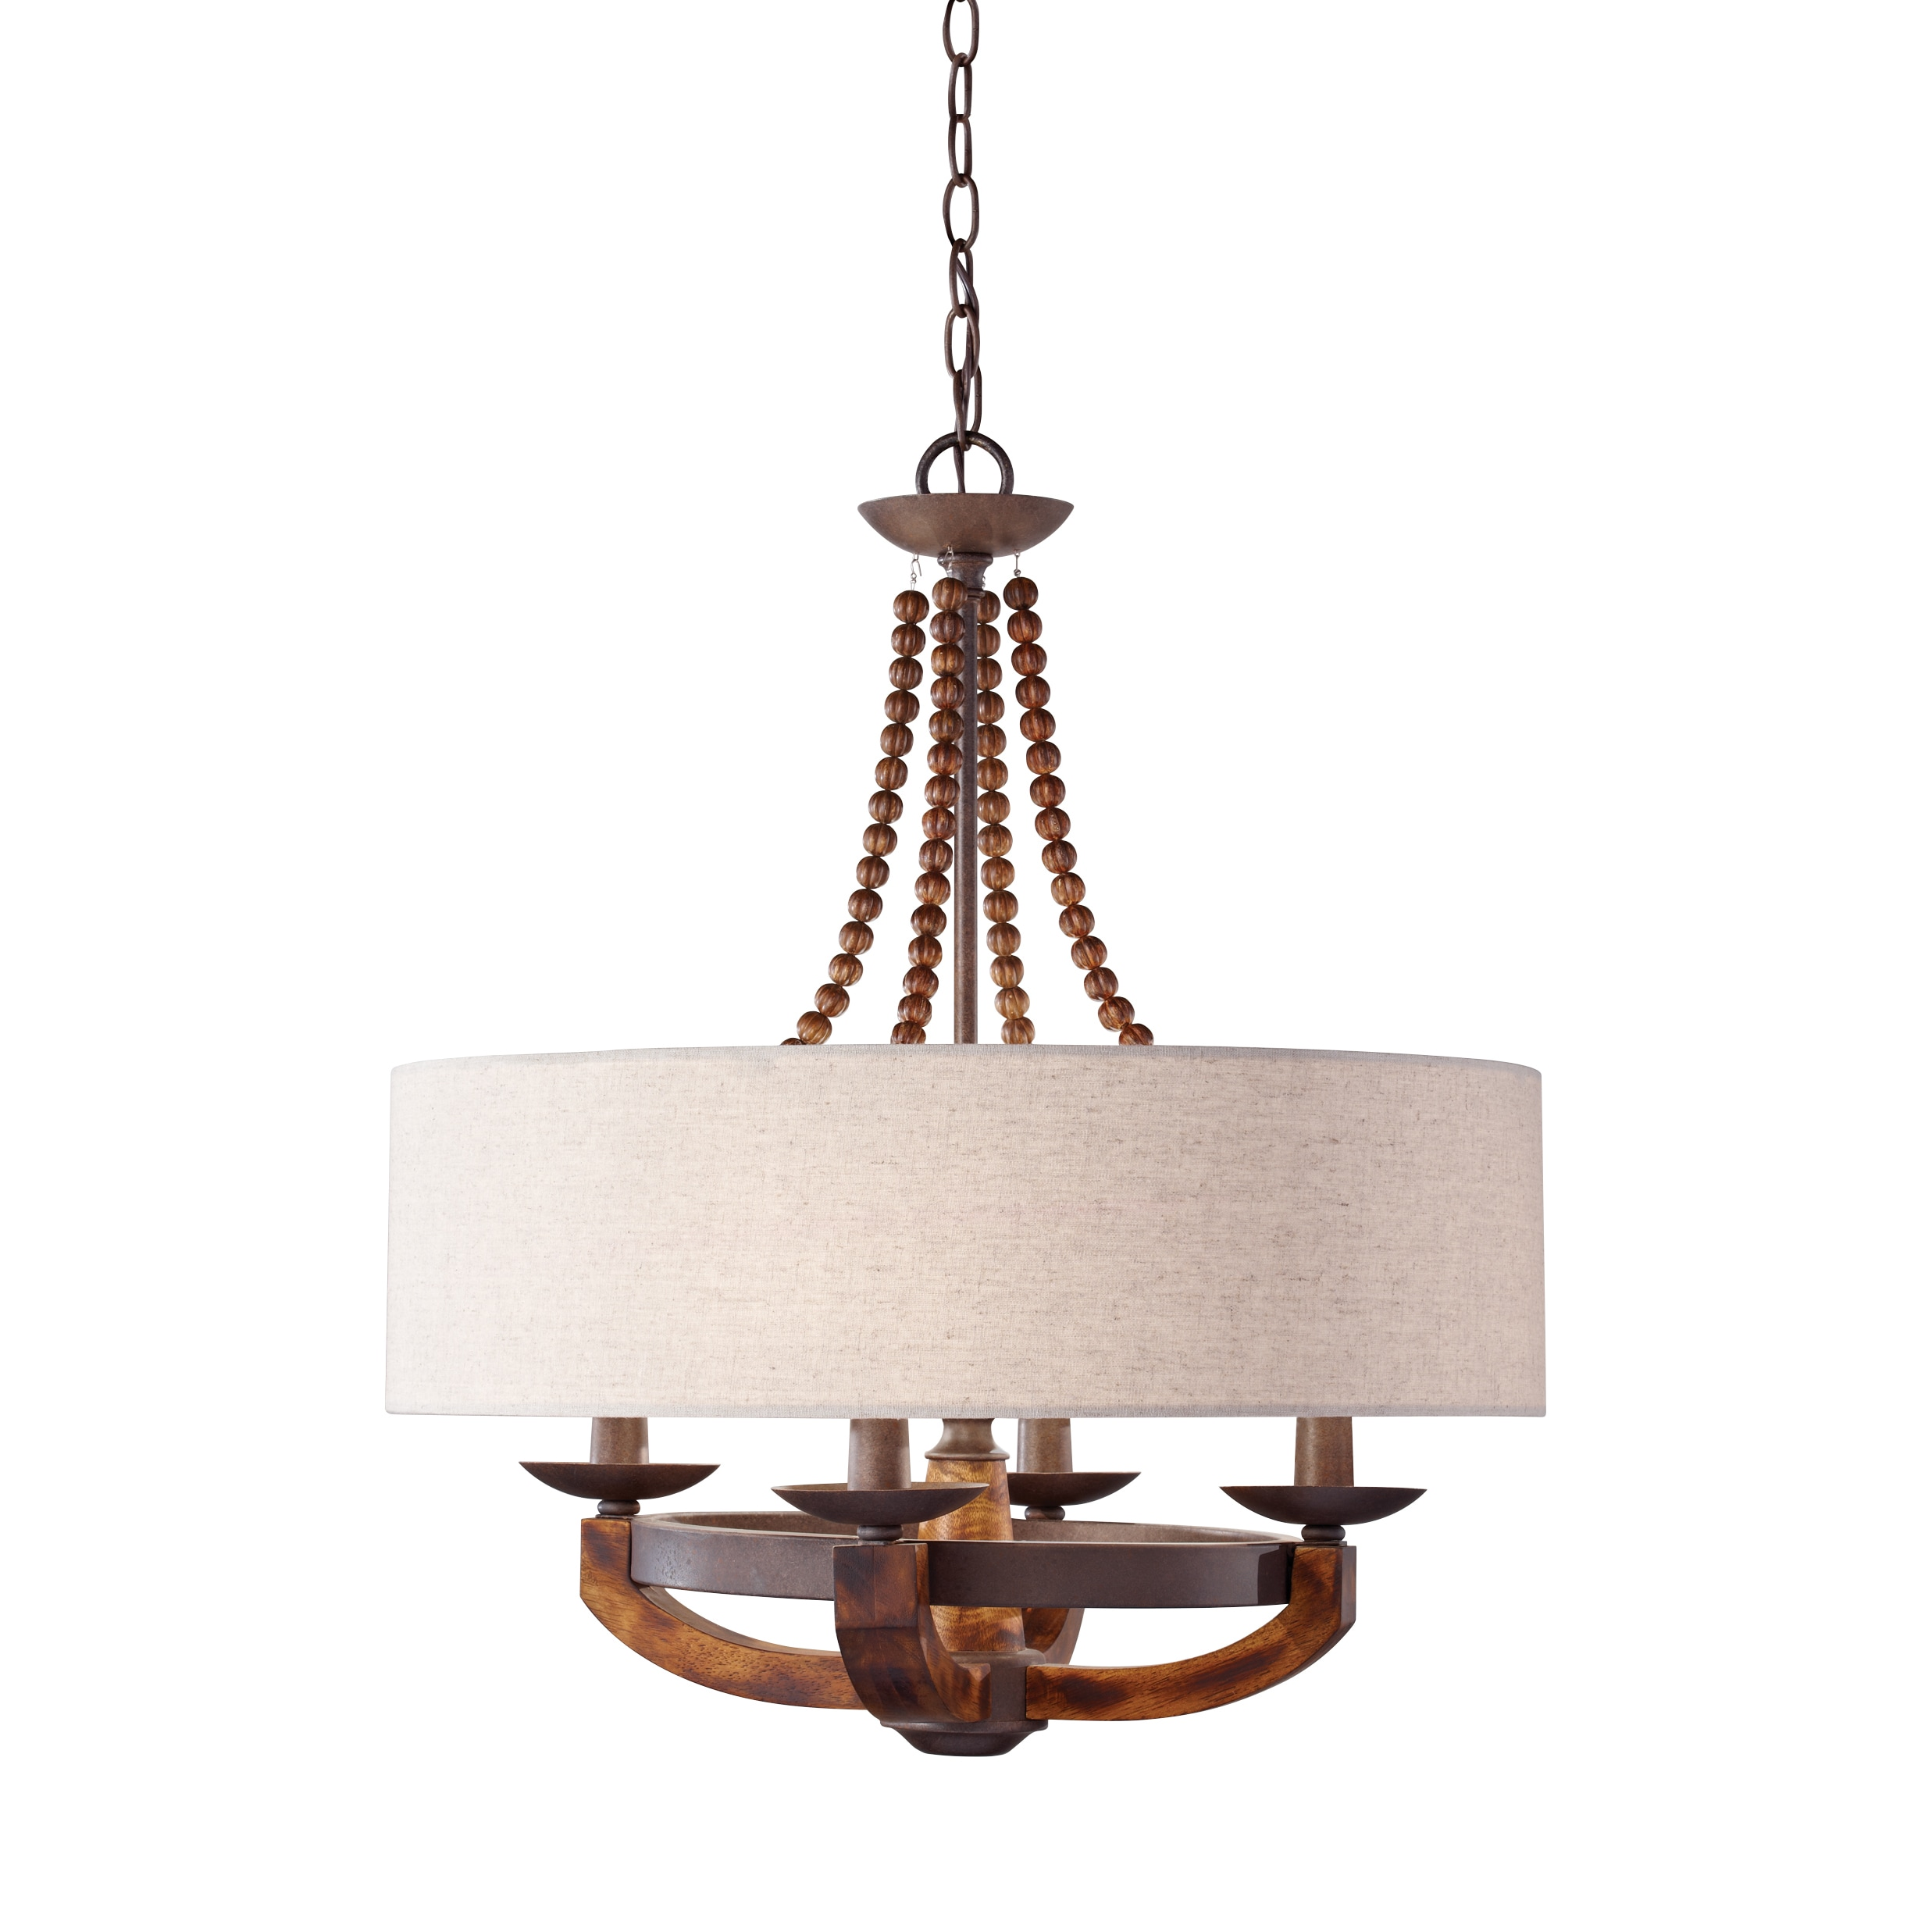 Feiss Adan 4 Light Rustic Iron Burnished Wood Chandelier Free